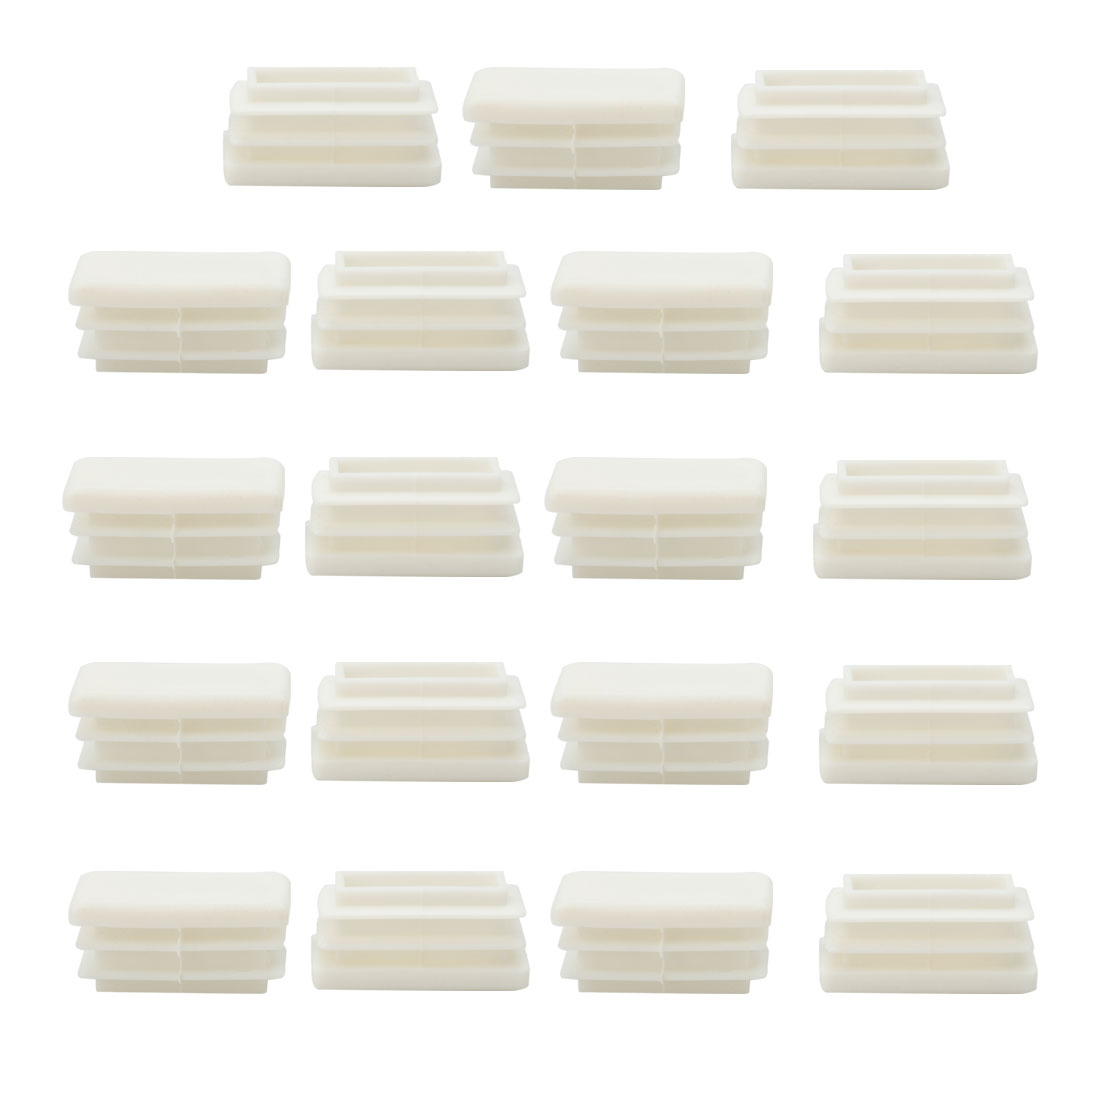 30 x 15mm Rectangle End Tube Inserts Furniture Chair Legs Floor Protector 19pcs - image 7 de 7